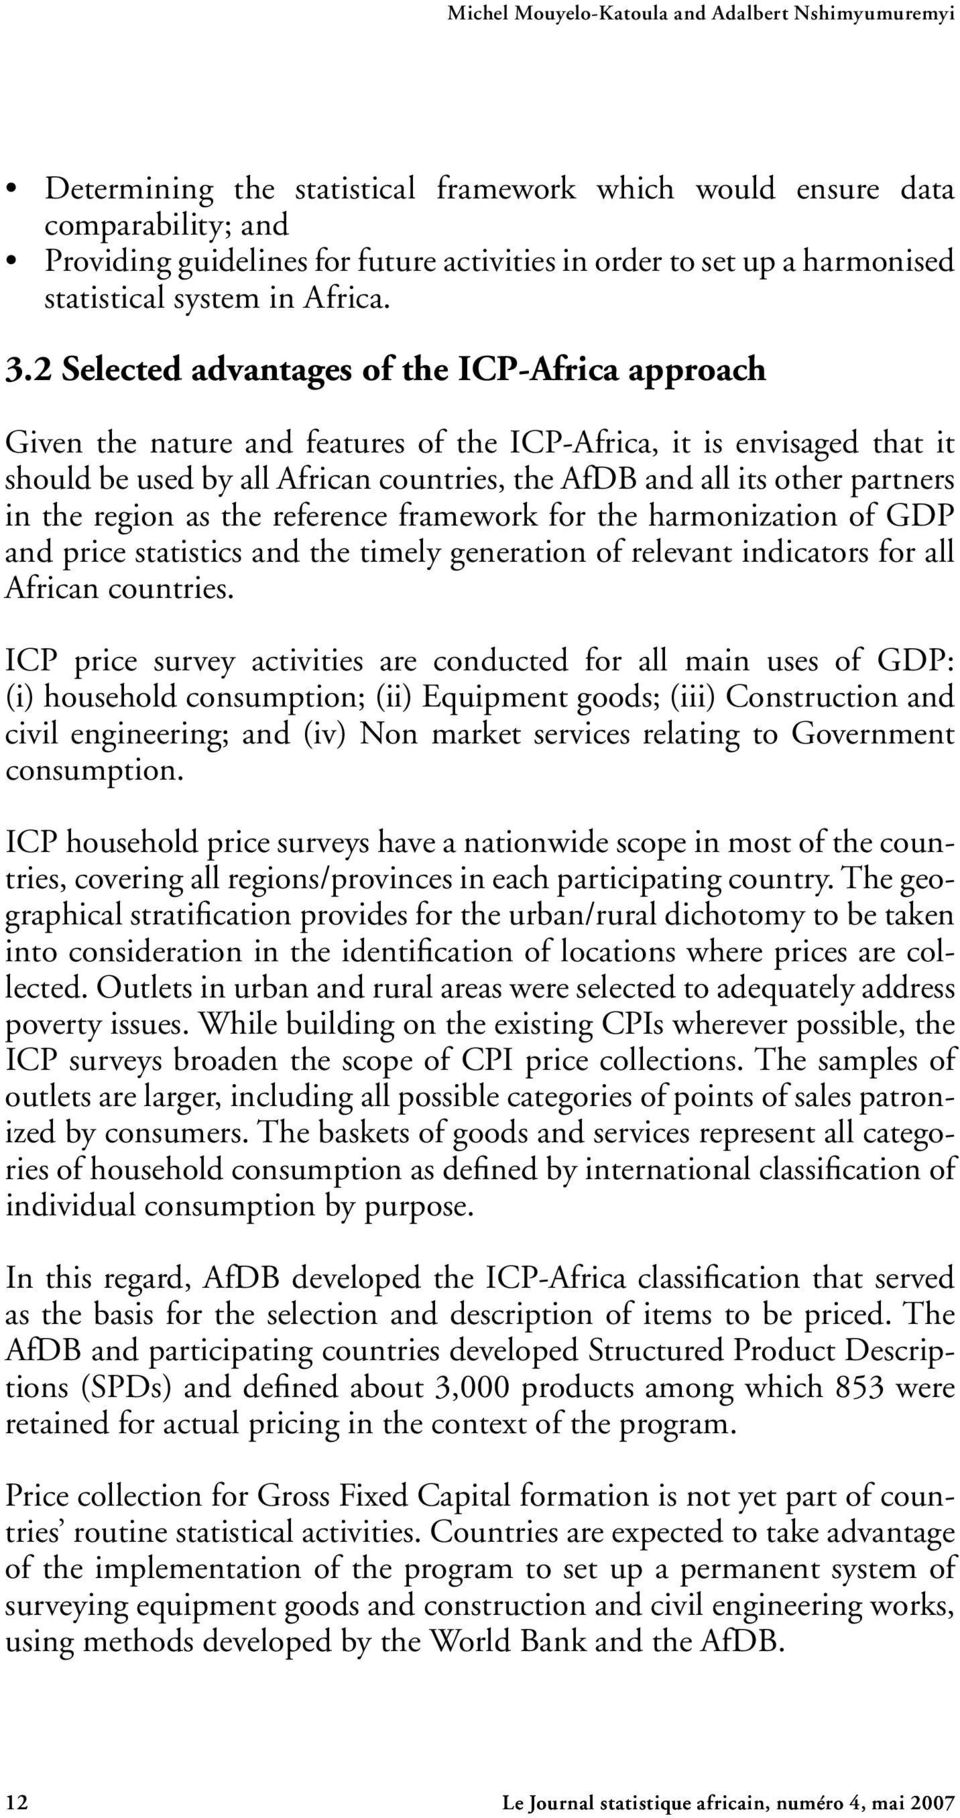 2 Selected advantages of the ICP-Africa approach Given the nature and features of the ICP-Africa, it is envisaged that it should be used by all African countries, the AfDB and all its other partners